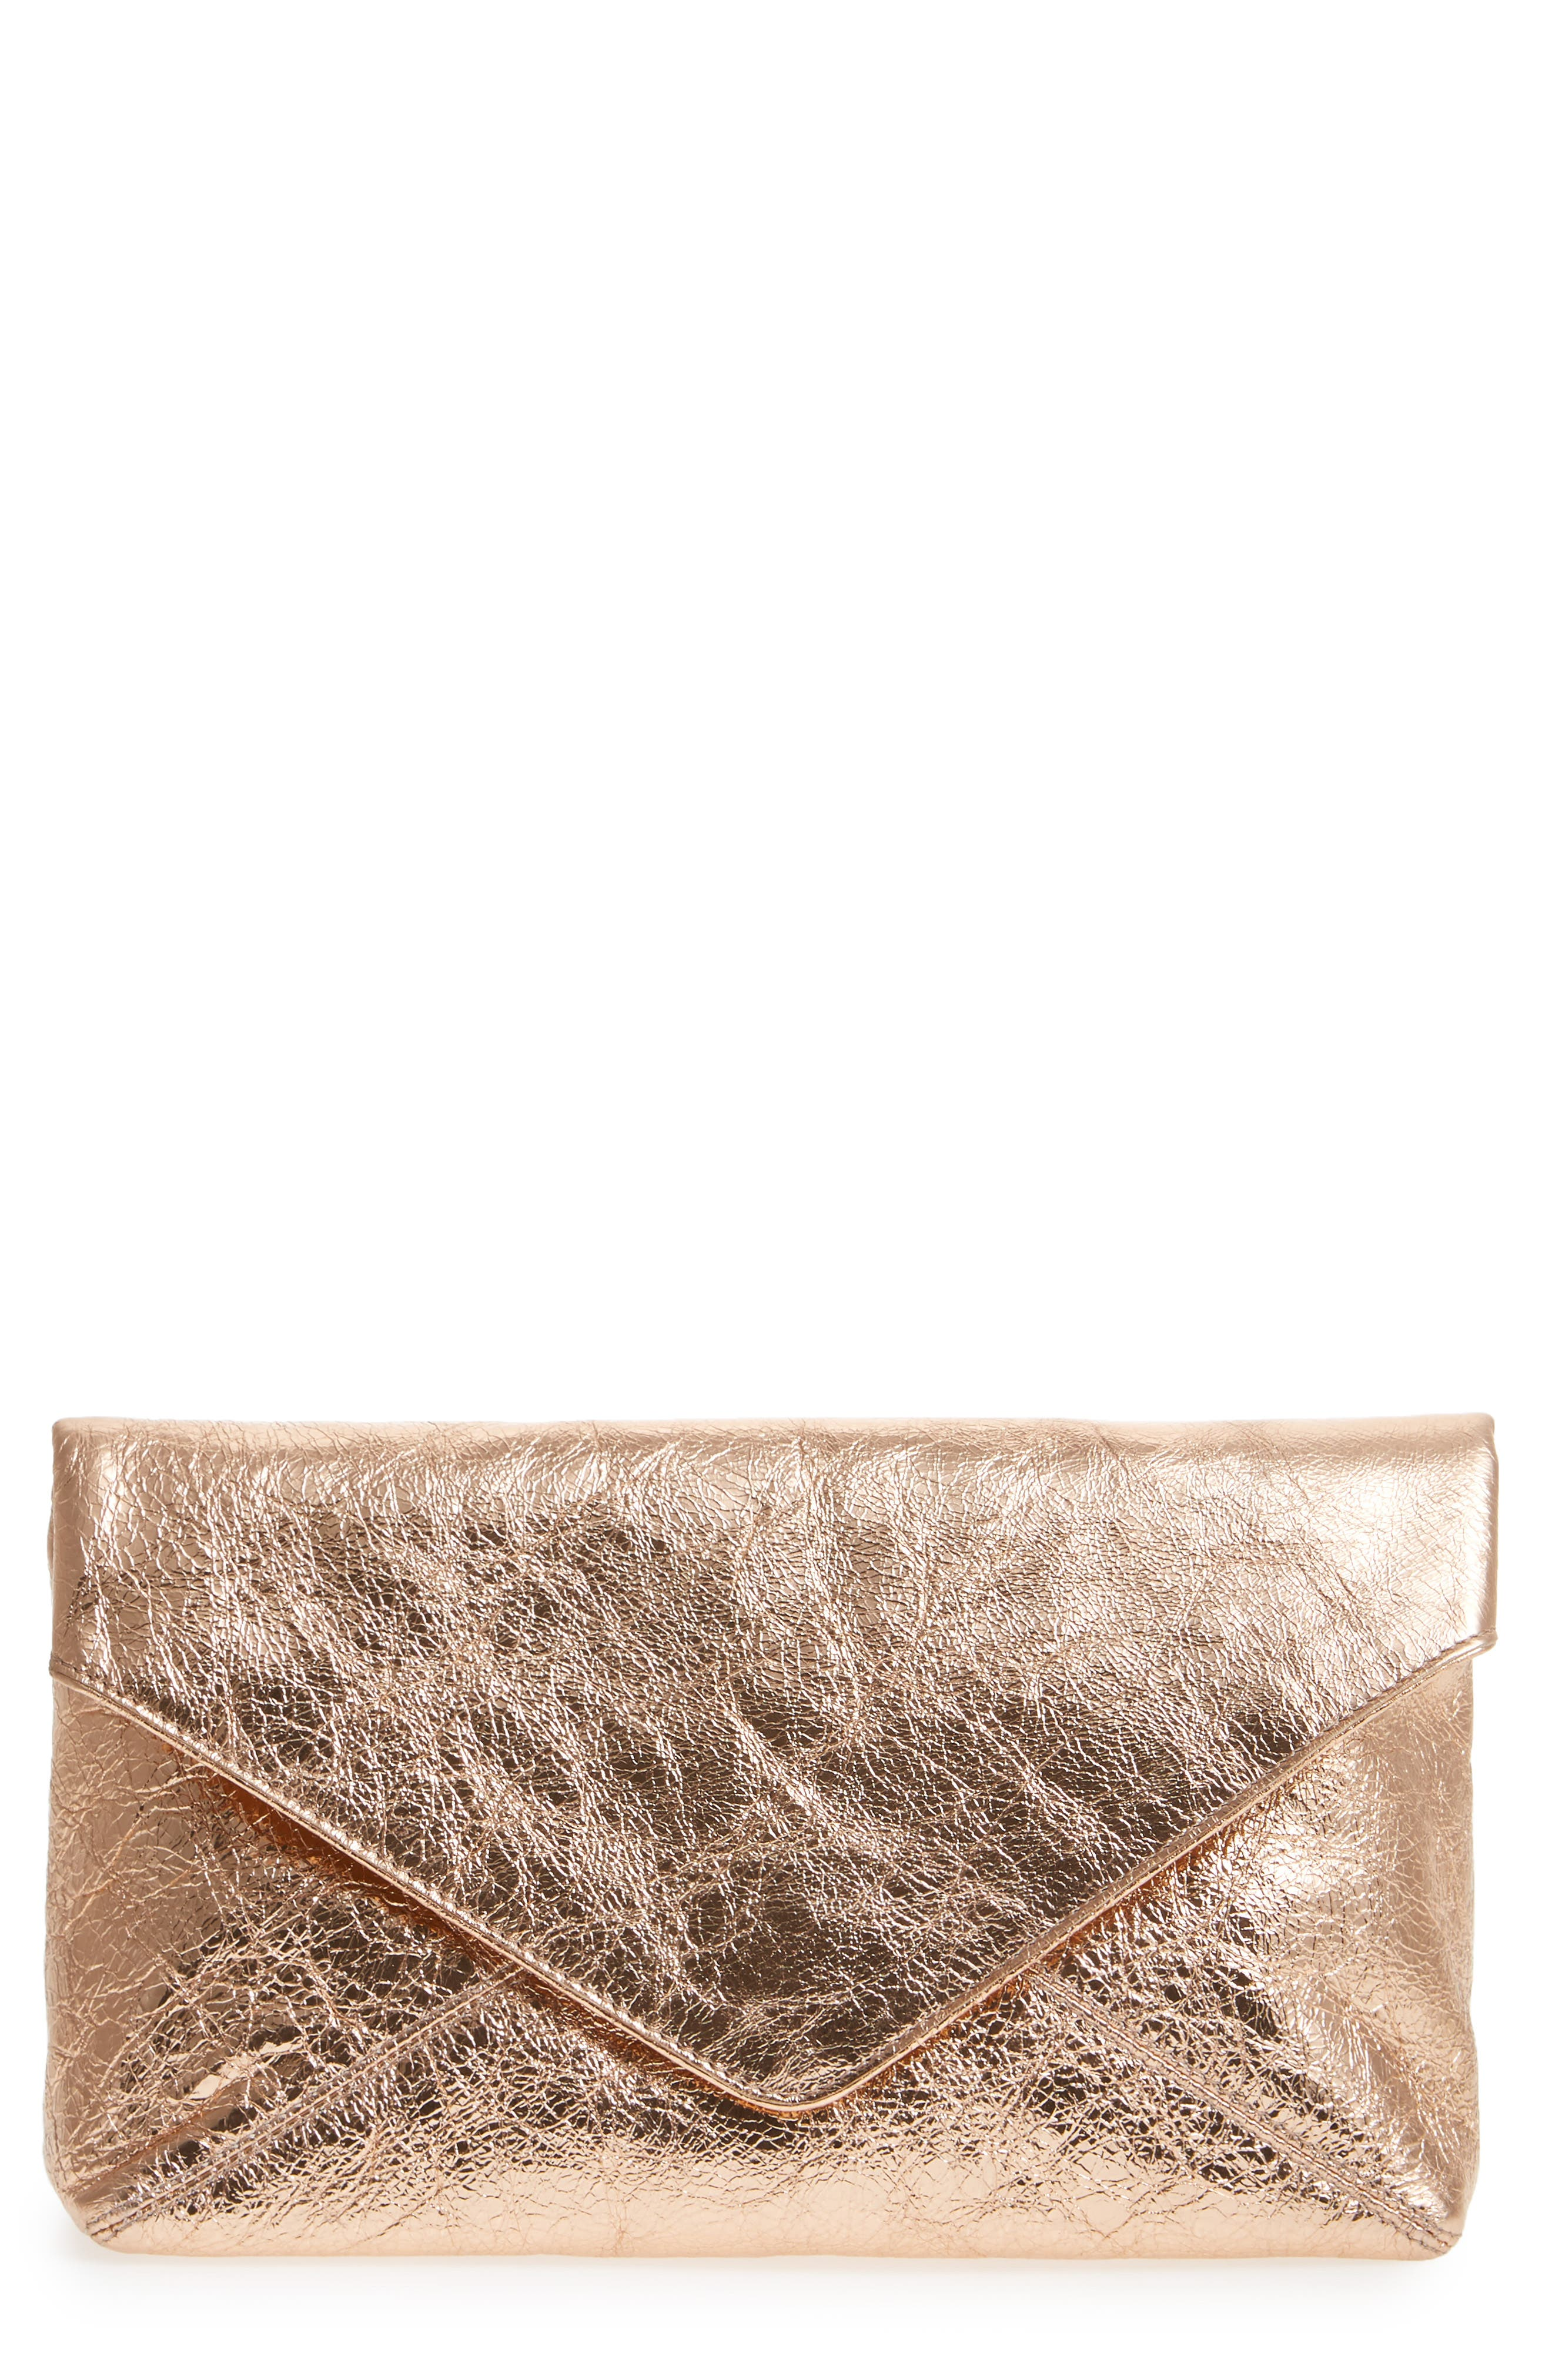 Crinkle Metallic Leather Envelope Clutch,                         Main,                         color, 650